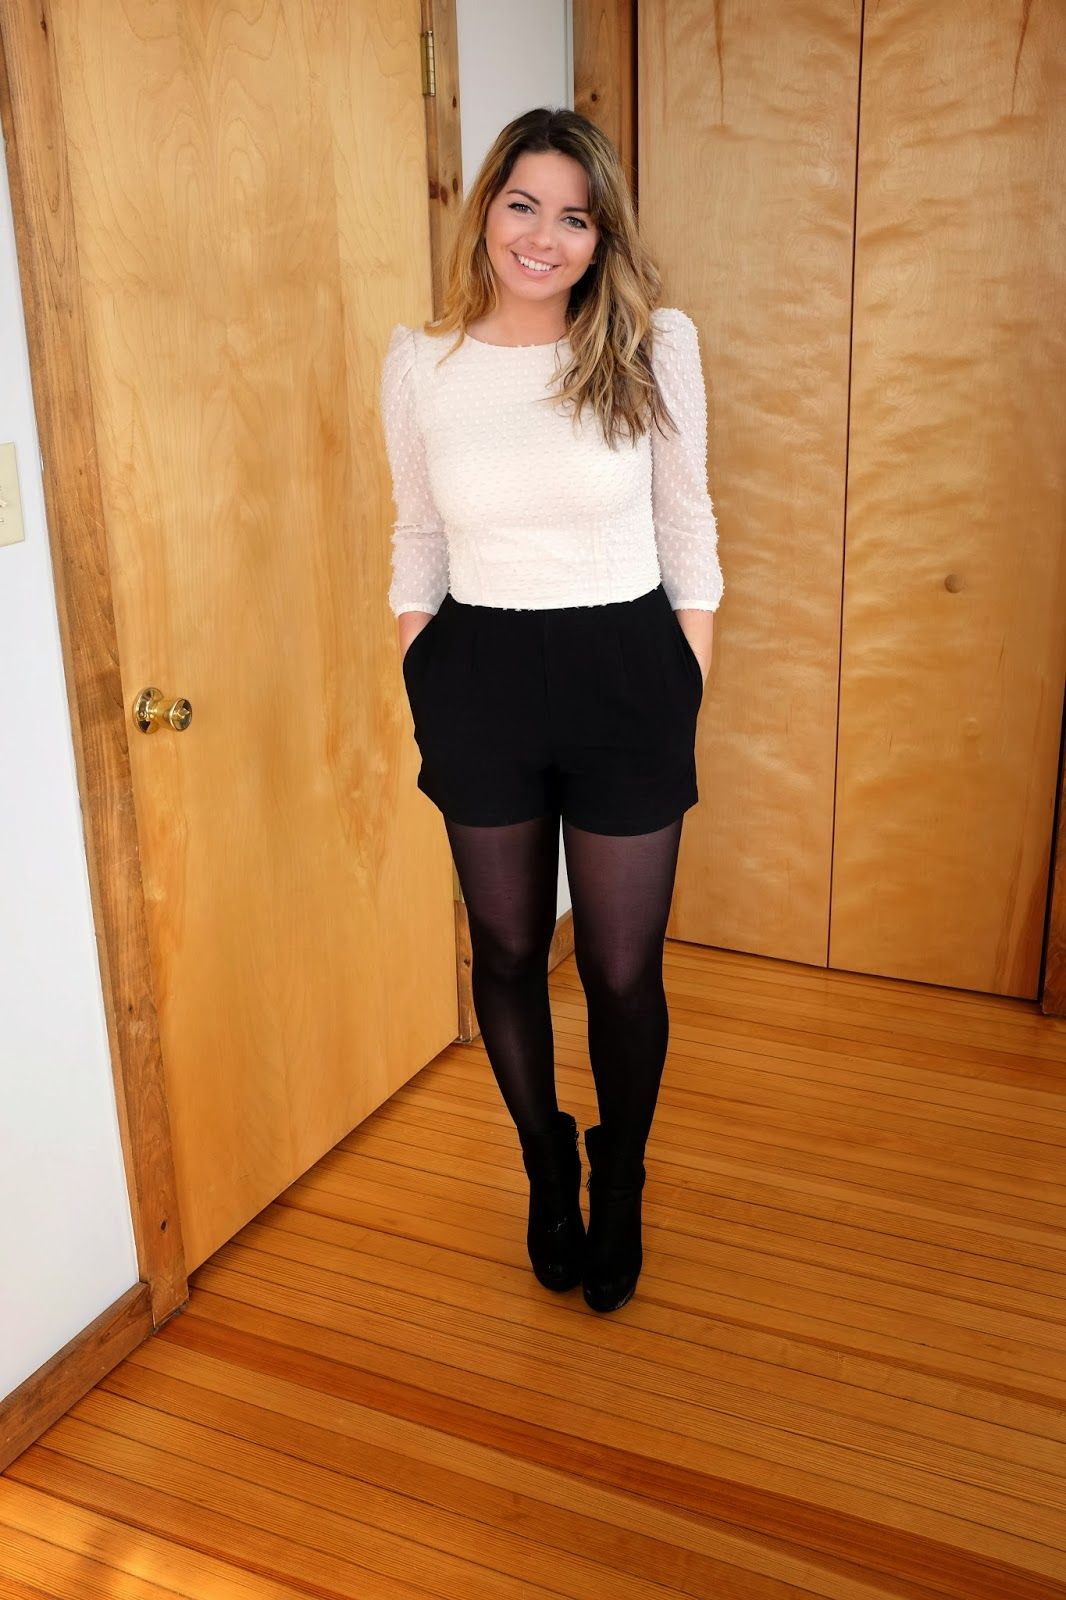 how to start a conversation with a girl online dating